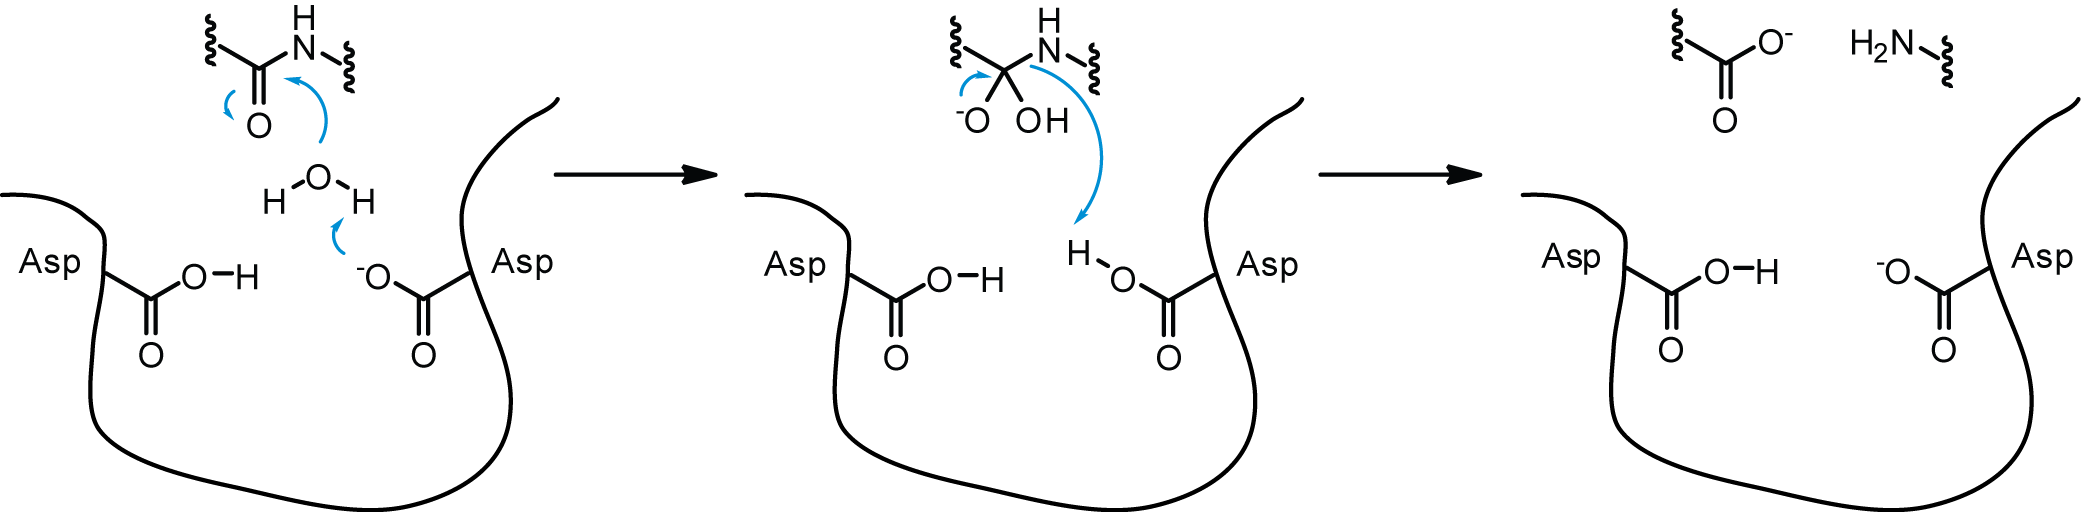 protease review